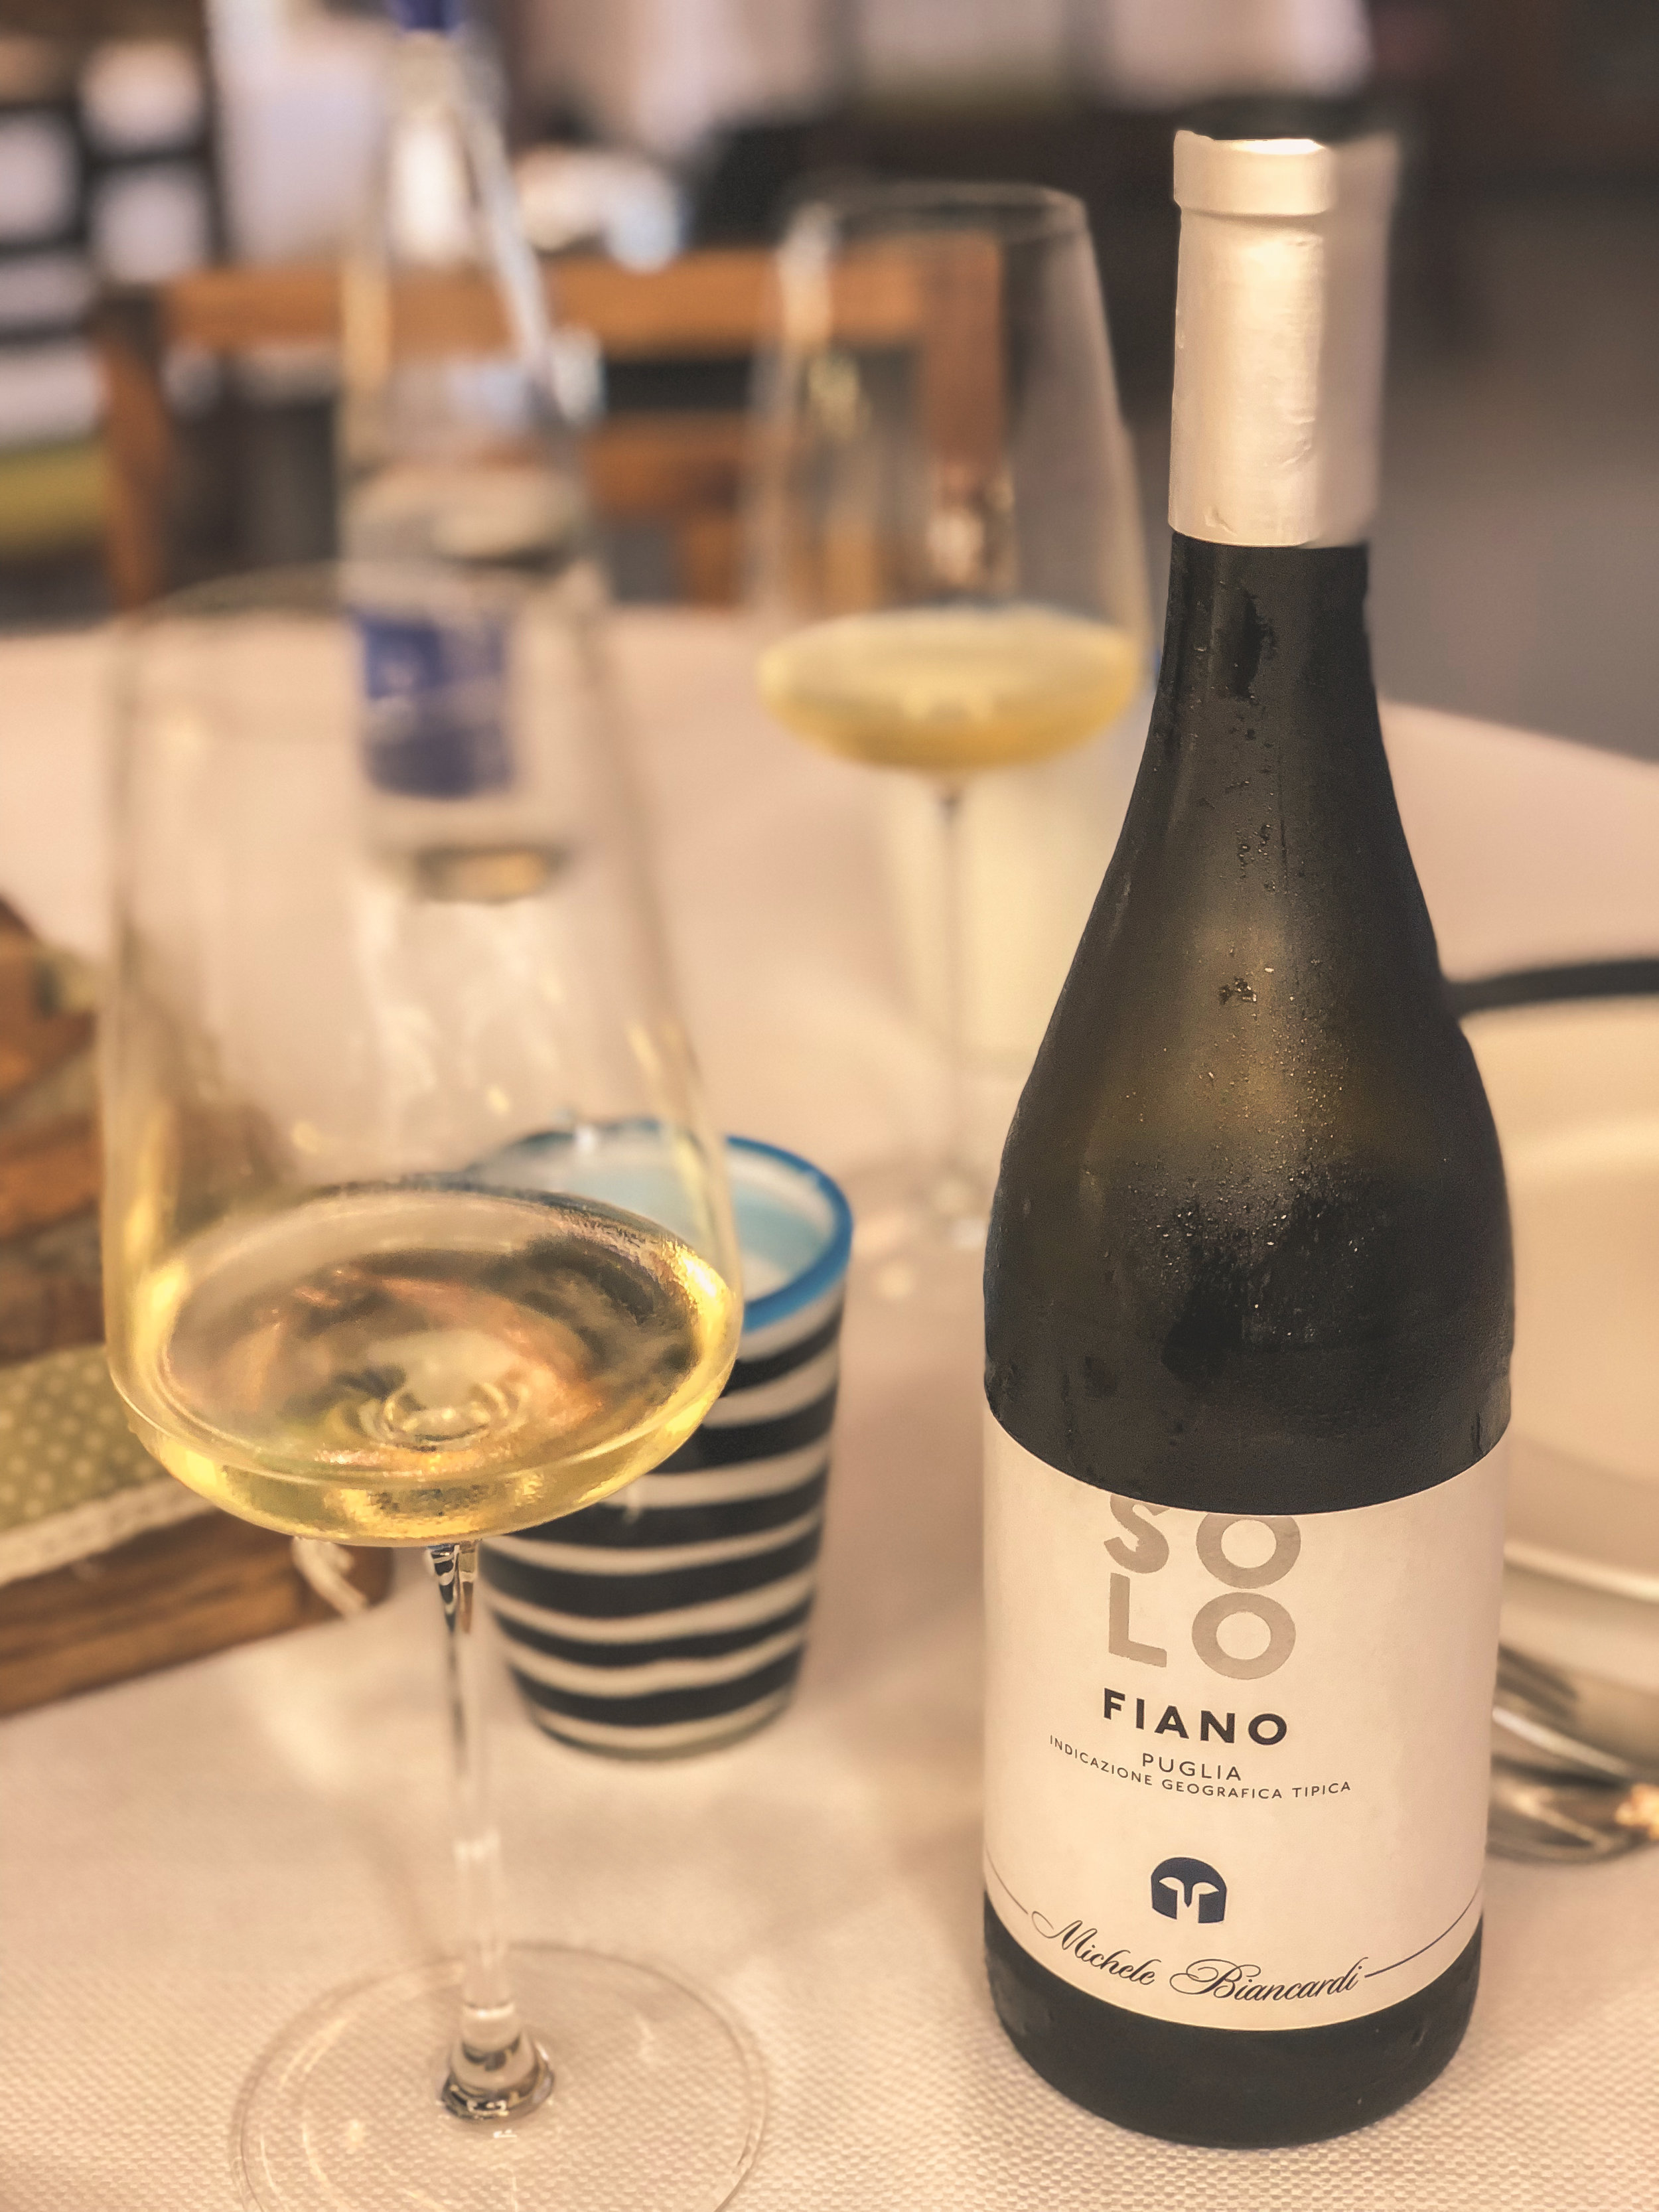 the bottle of wine we chose to accompany our puglian lunch. this crisp white wine is made from the fiano grape grown primarily in the campania region and on the island of sicily. NEEDLESS TO SAY IT WAS YUMMY!